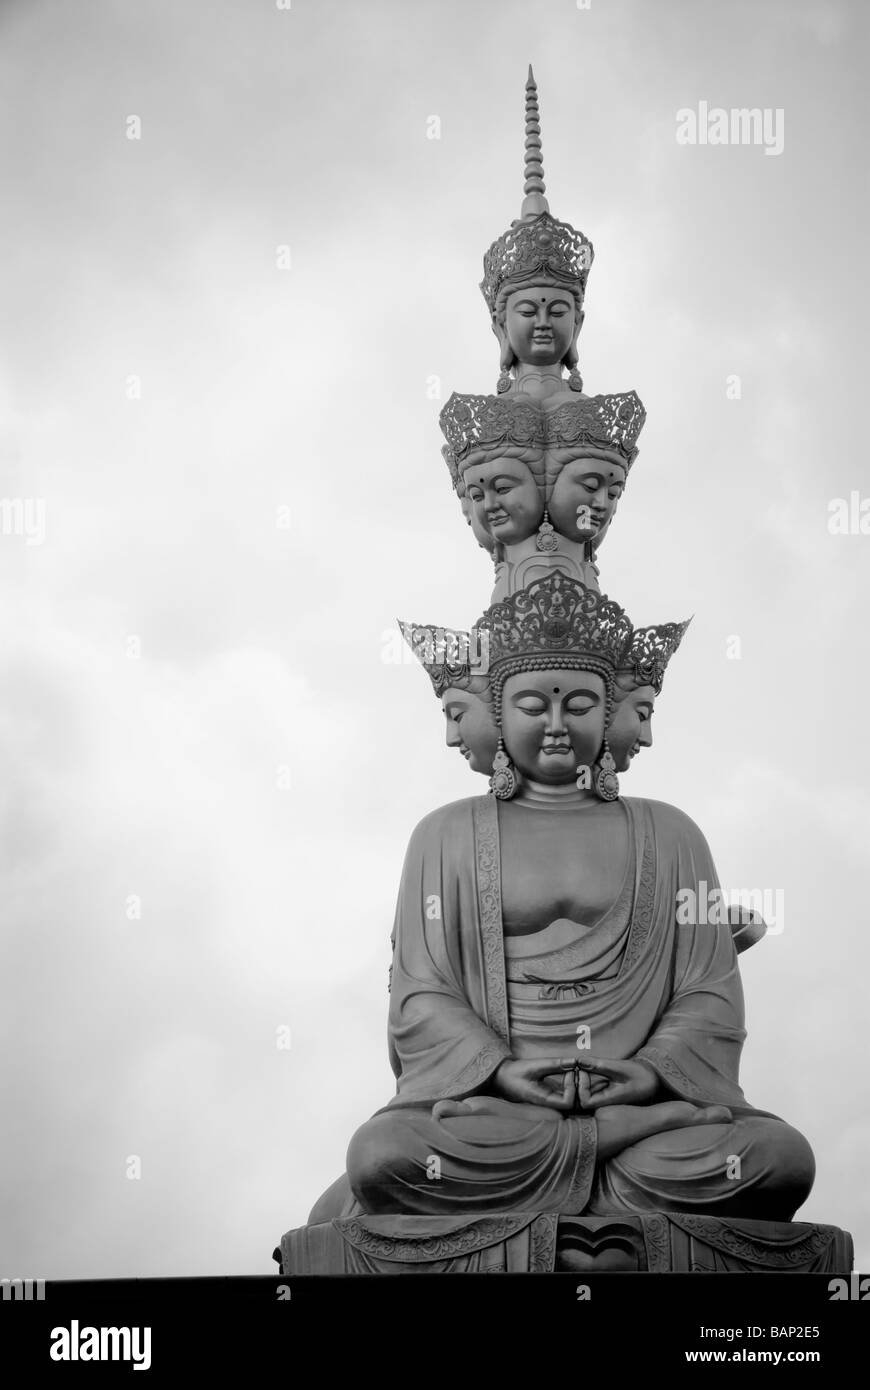 Golden Buddha at the summit of Mount Emei Shan, Sichuan, China 2008 - Stock Image